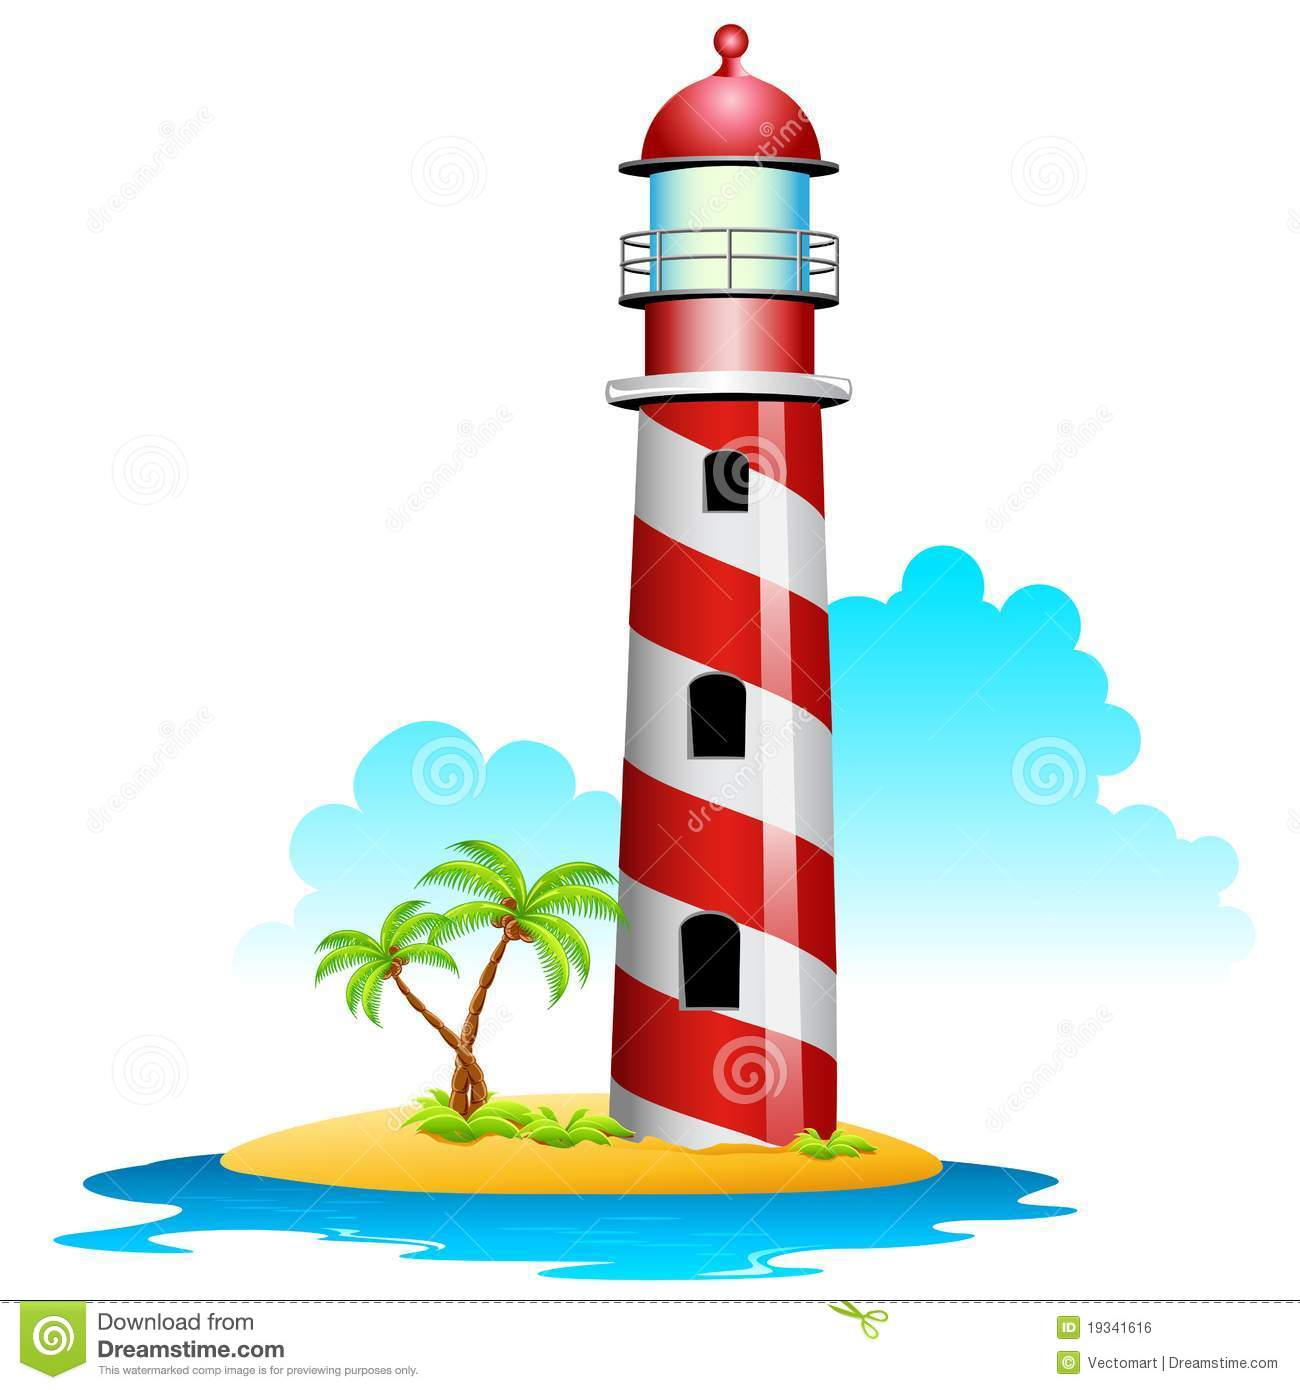 Lighthouse Royalty Free Stock Image - Image: 19341616